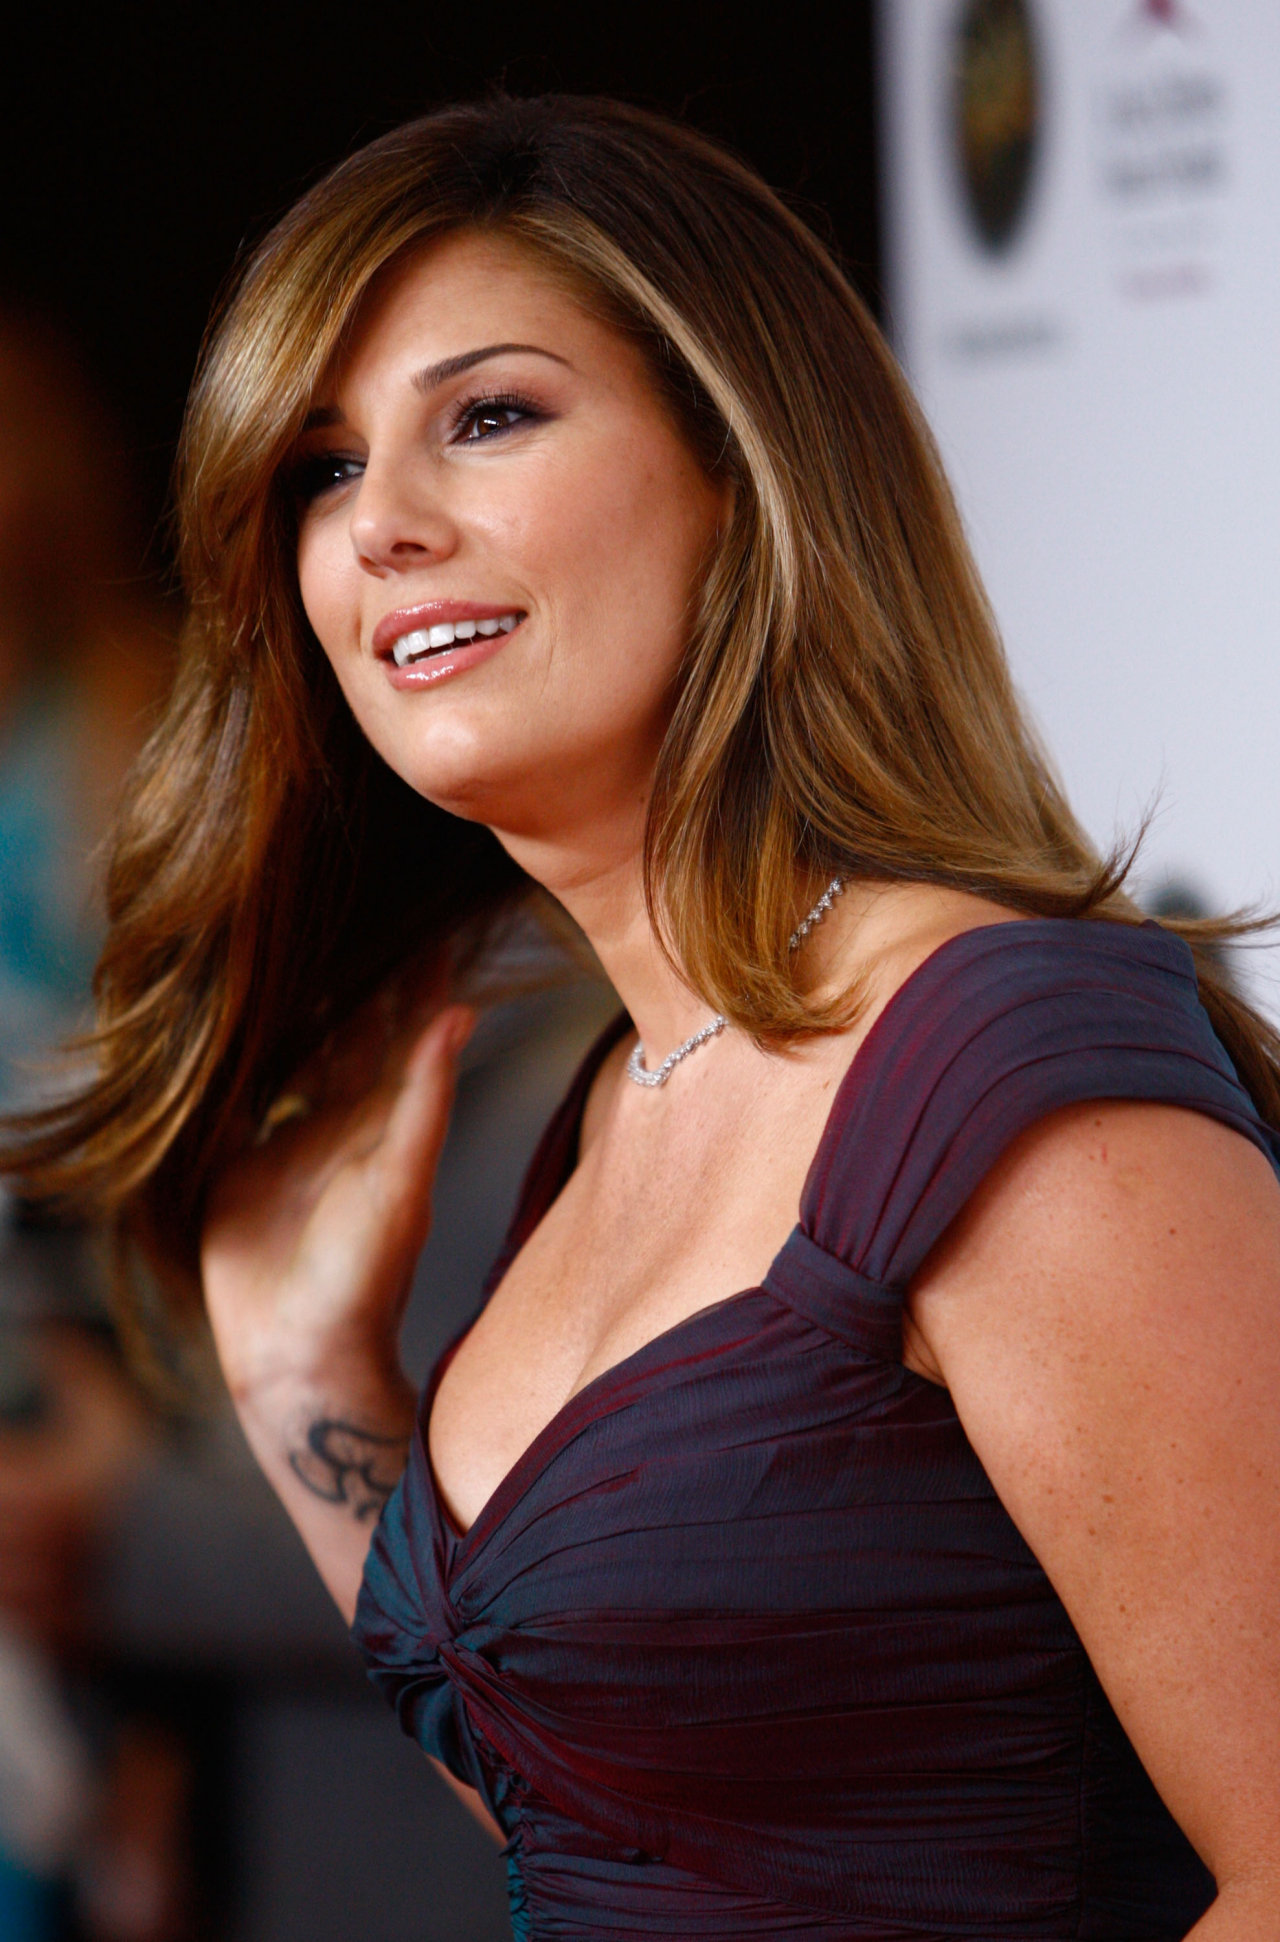 Daisy Fuentes leaked wallpapers